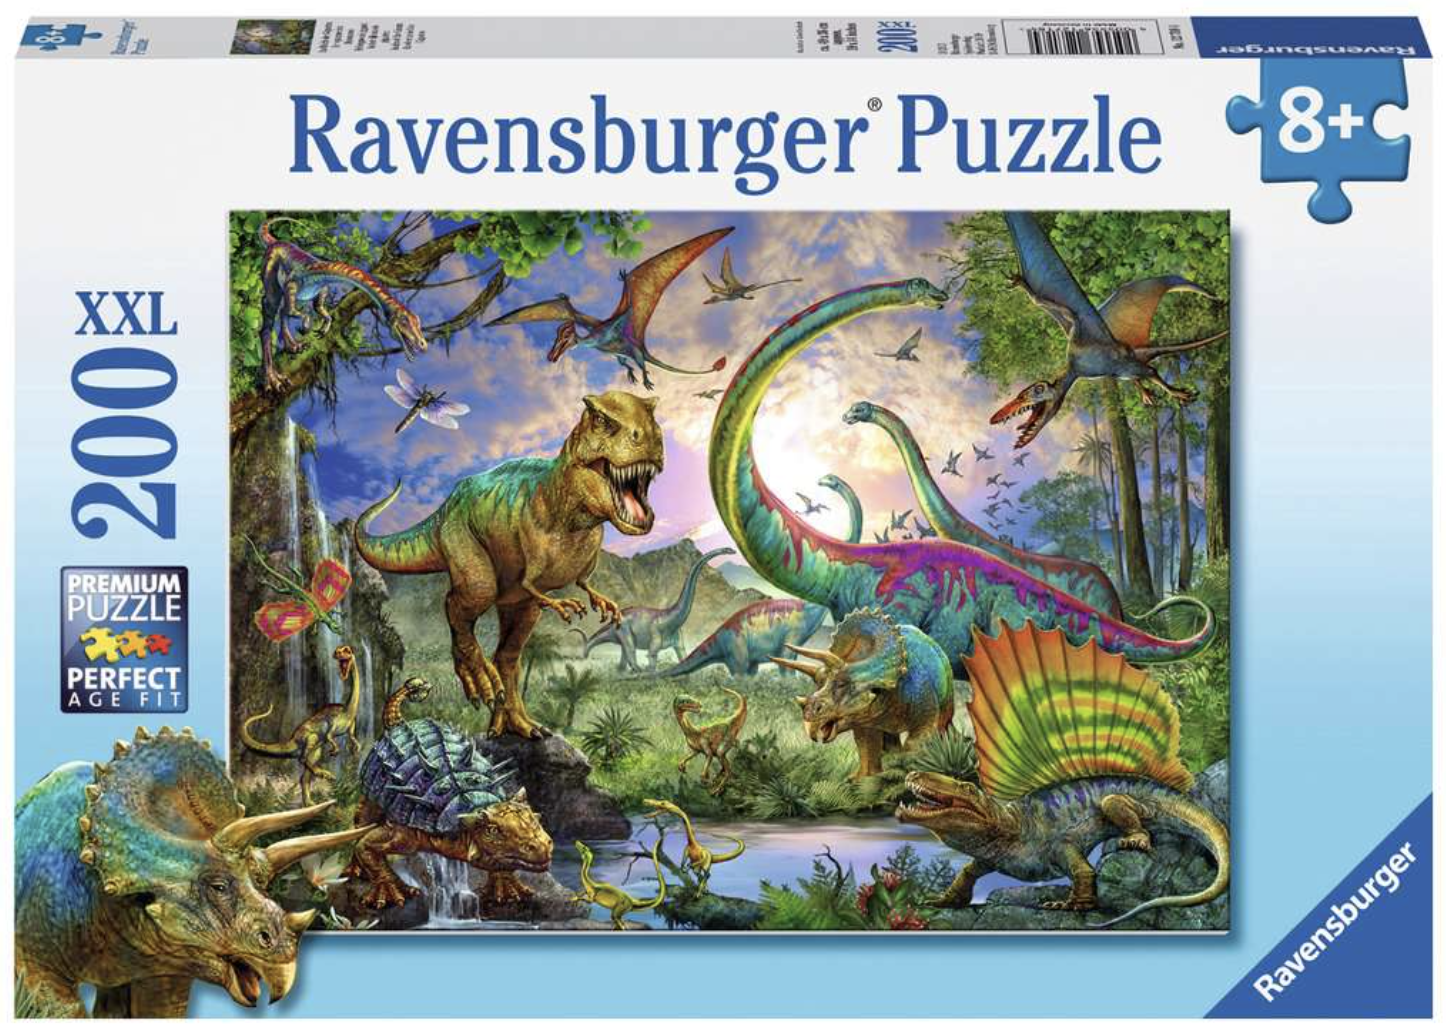 Realm of the Giants 200 Piece Puzzle by Ravensburger